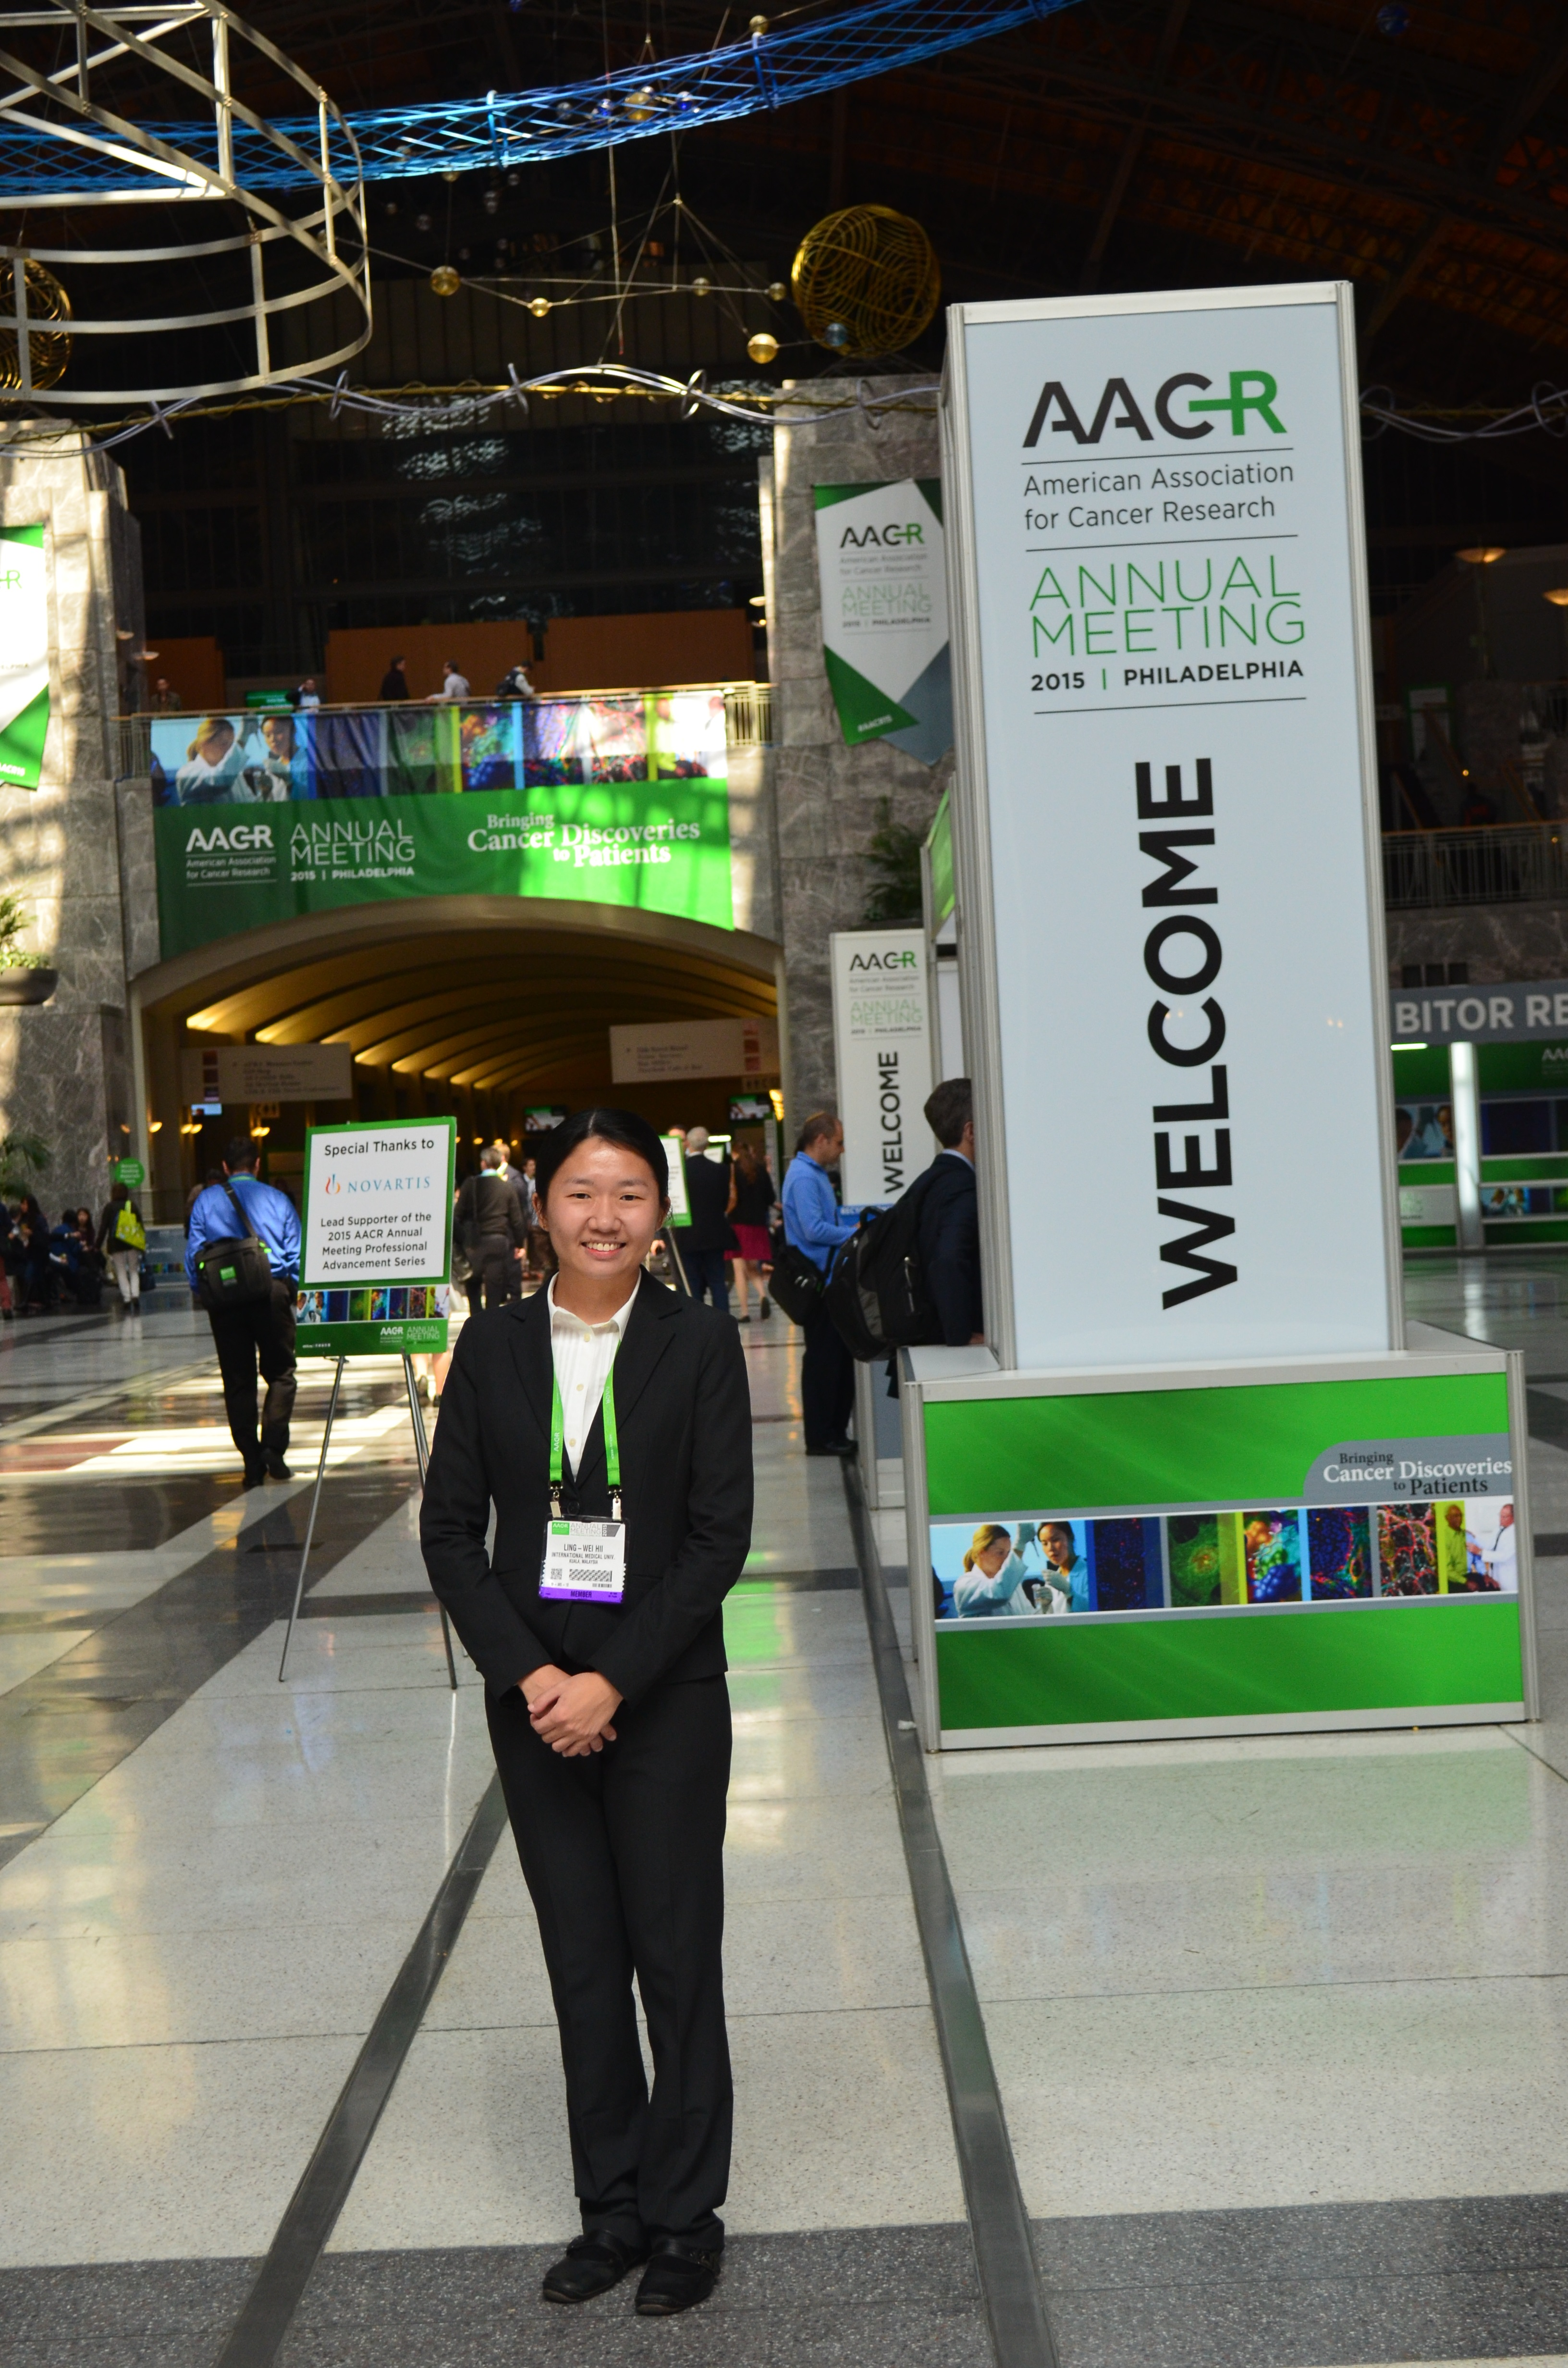 IMU Alumnus Ling Wei at AACR Meeting